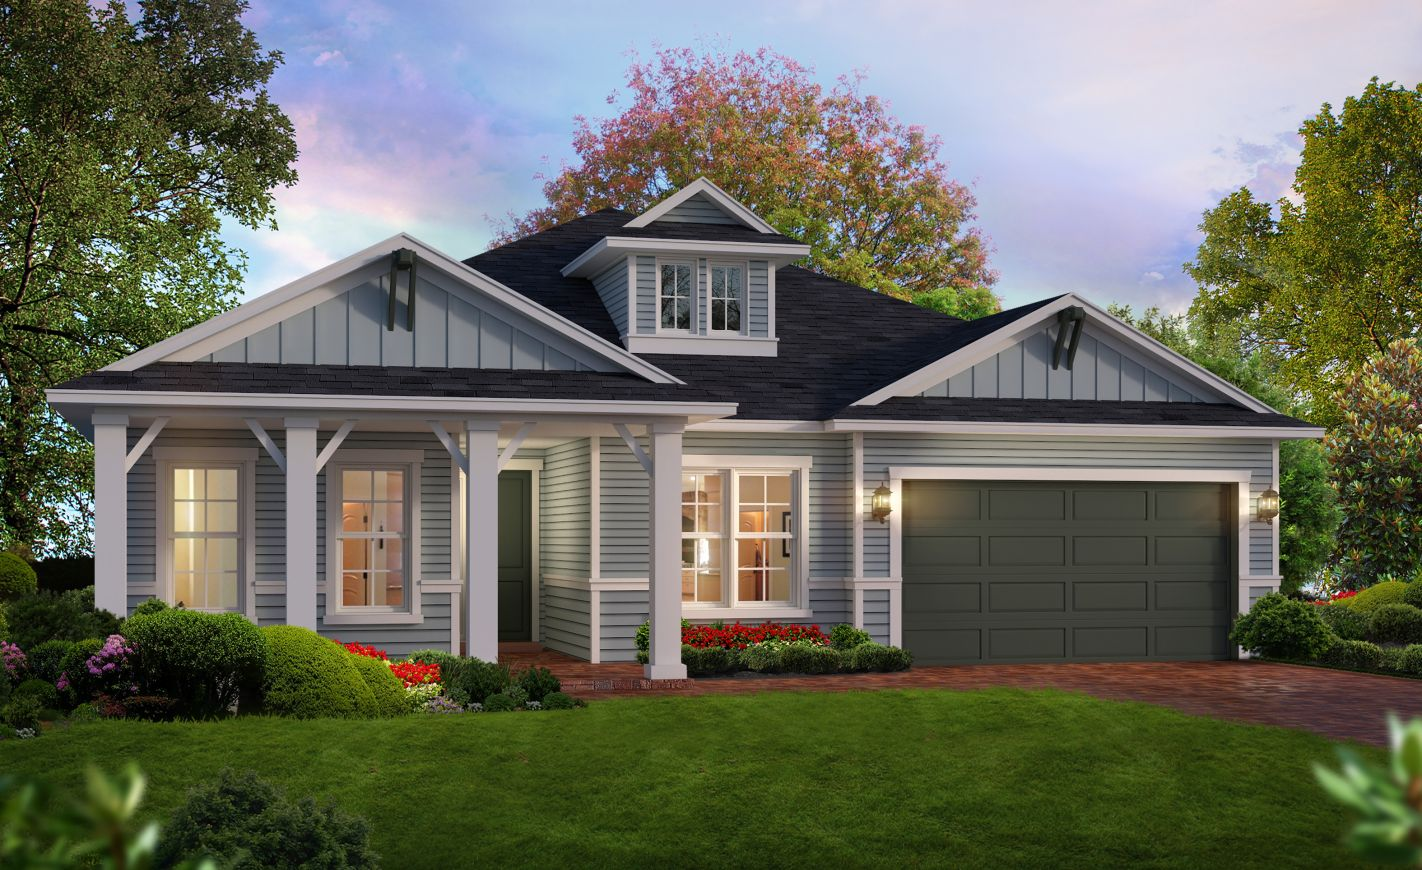 Nocatee Homes for Sale - The Arden at Nocatee